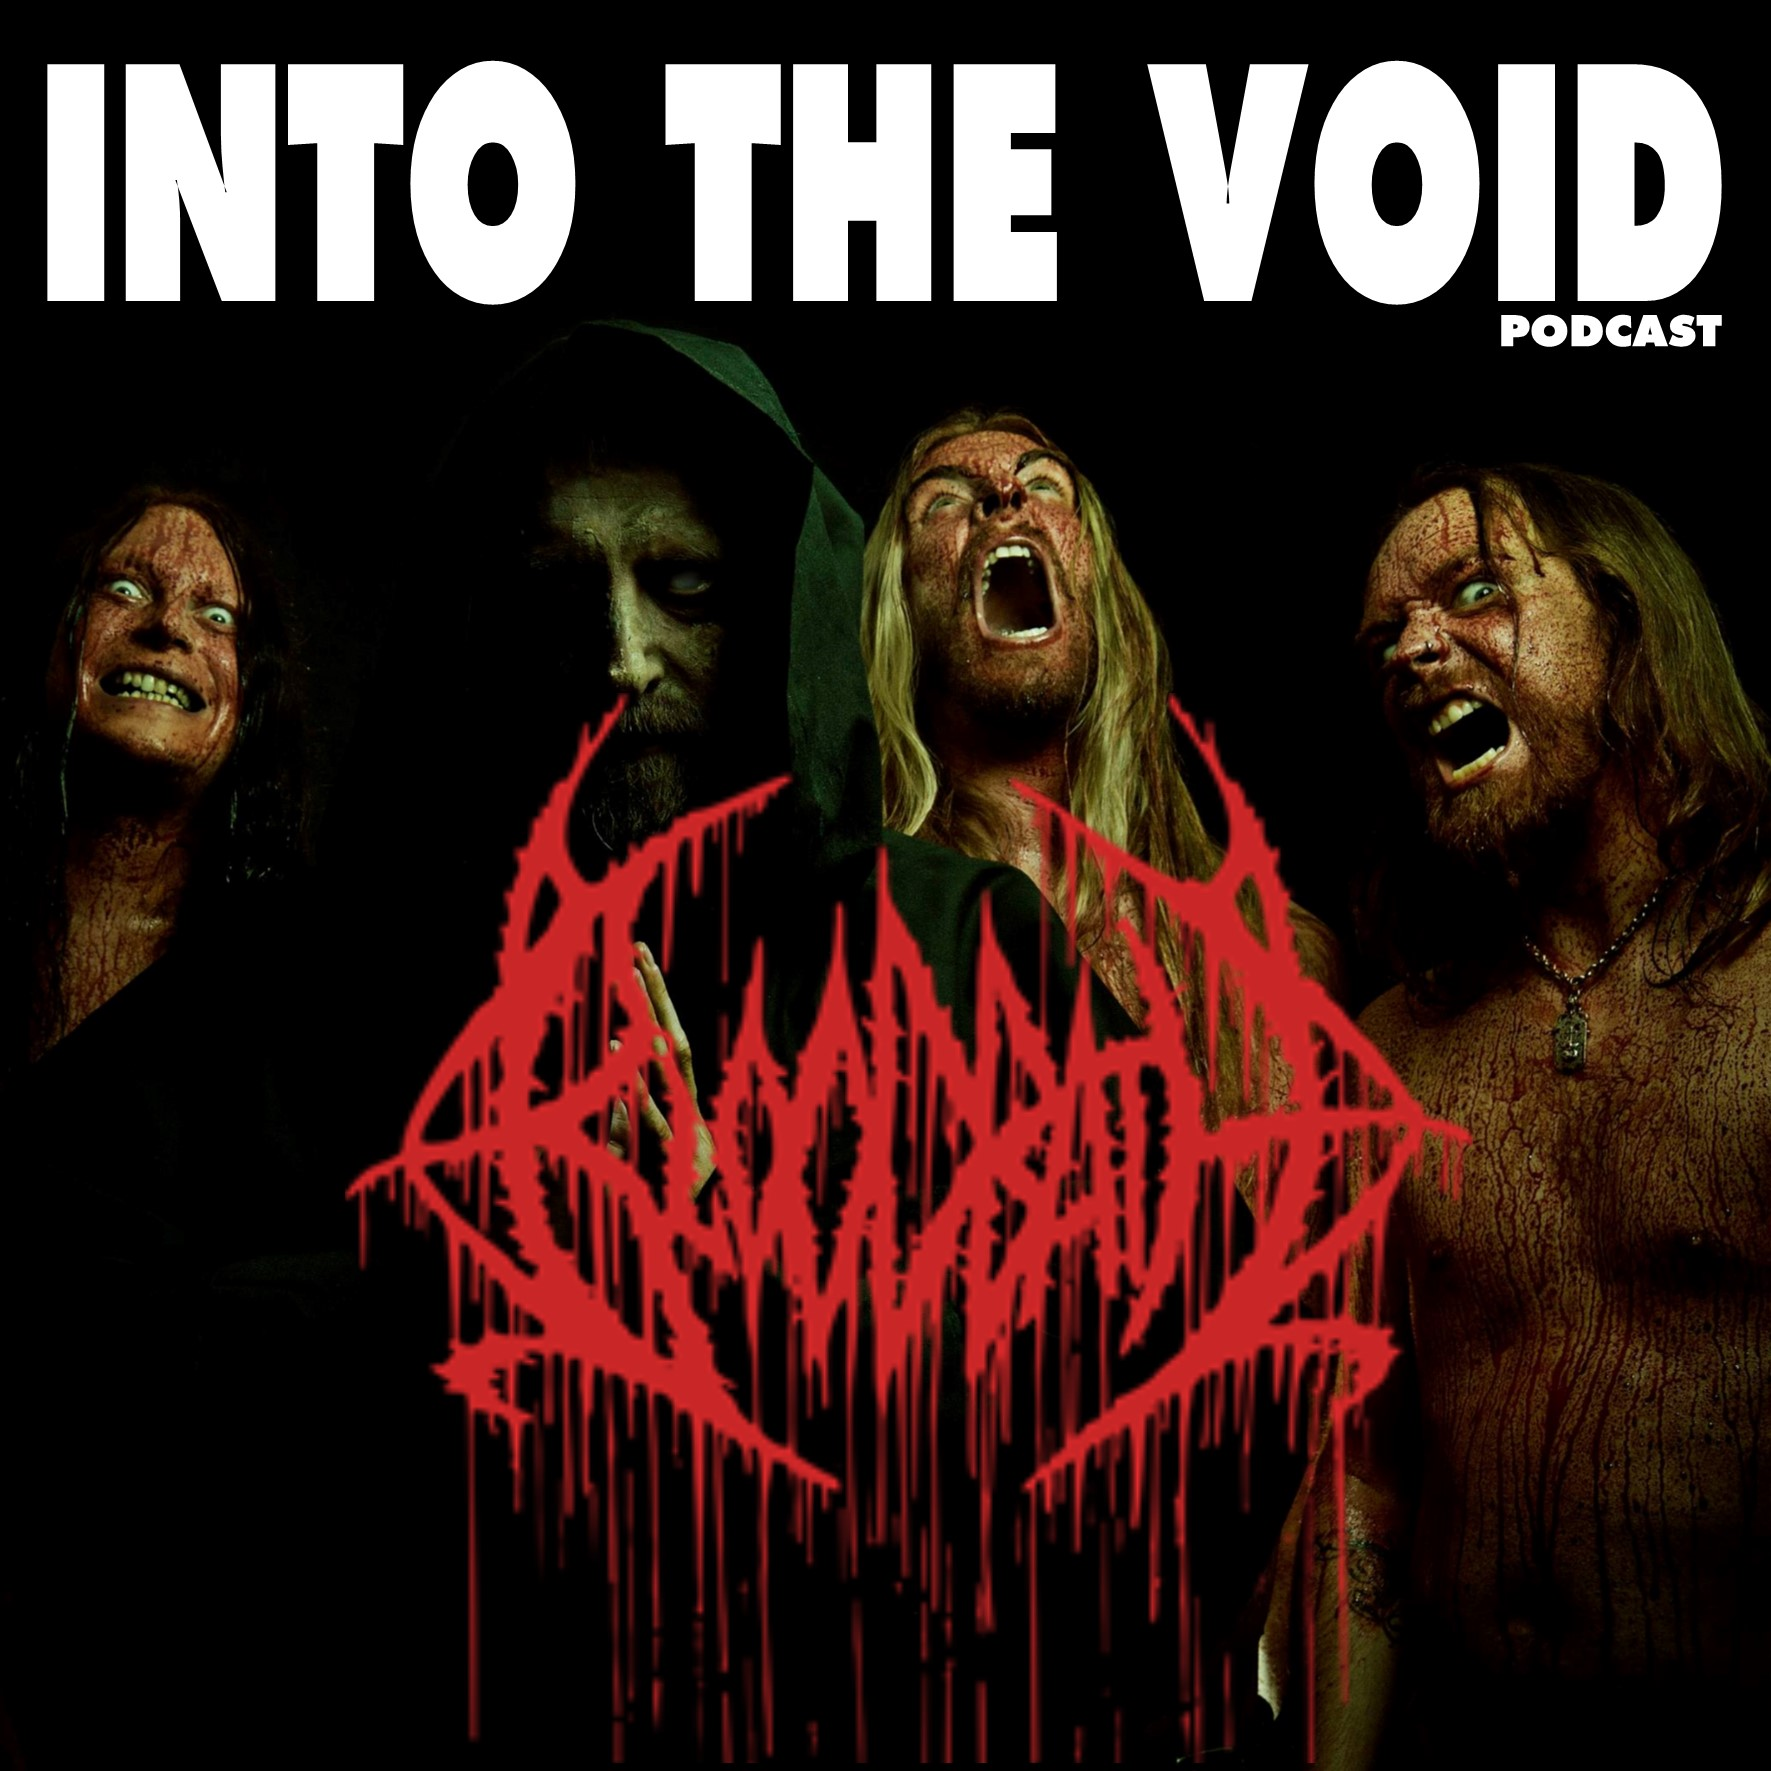 Bloodbath - Into The Void Podcast